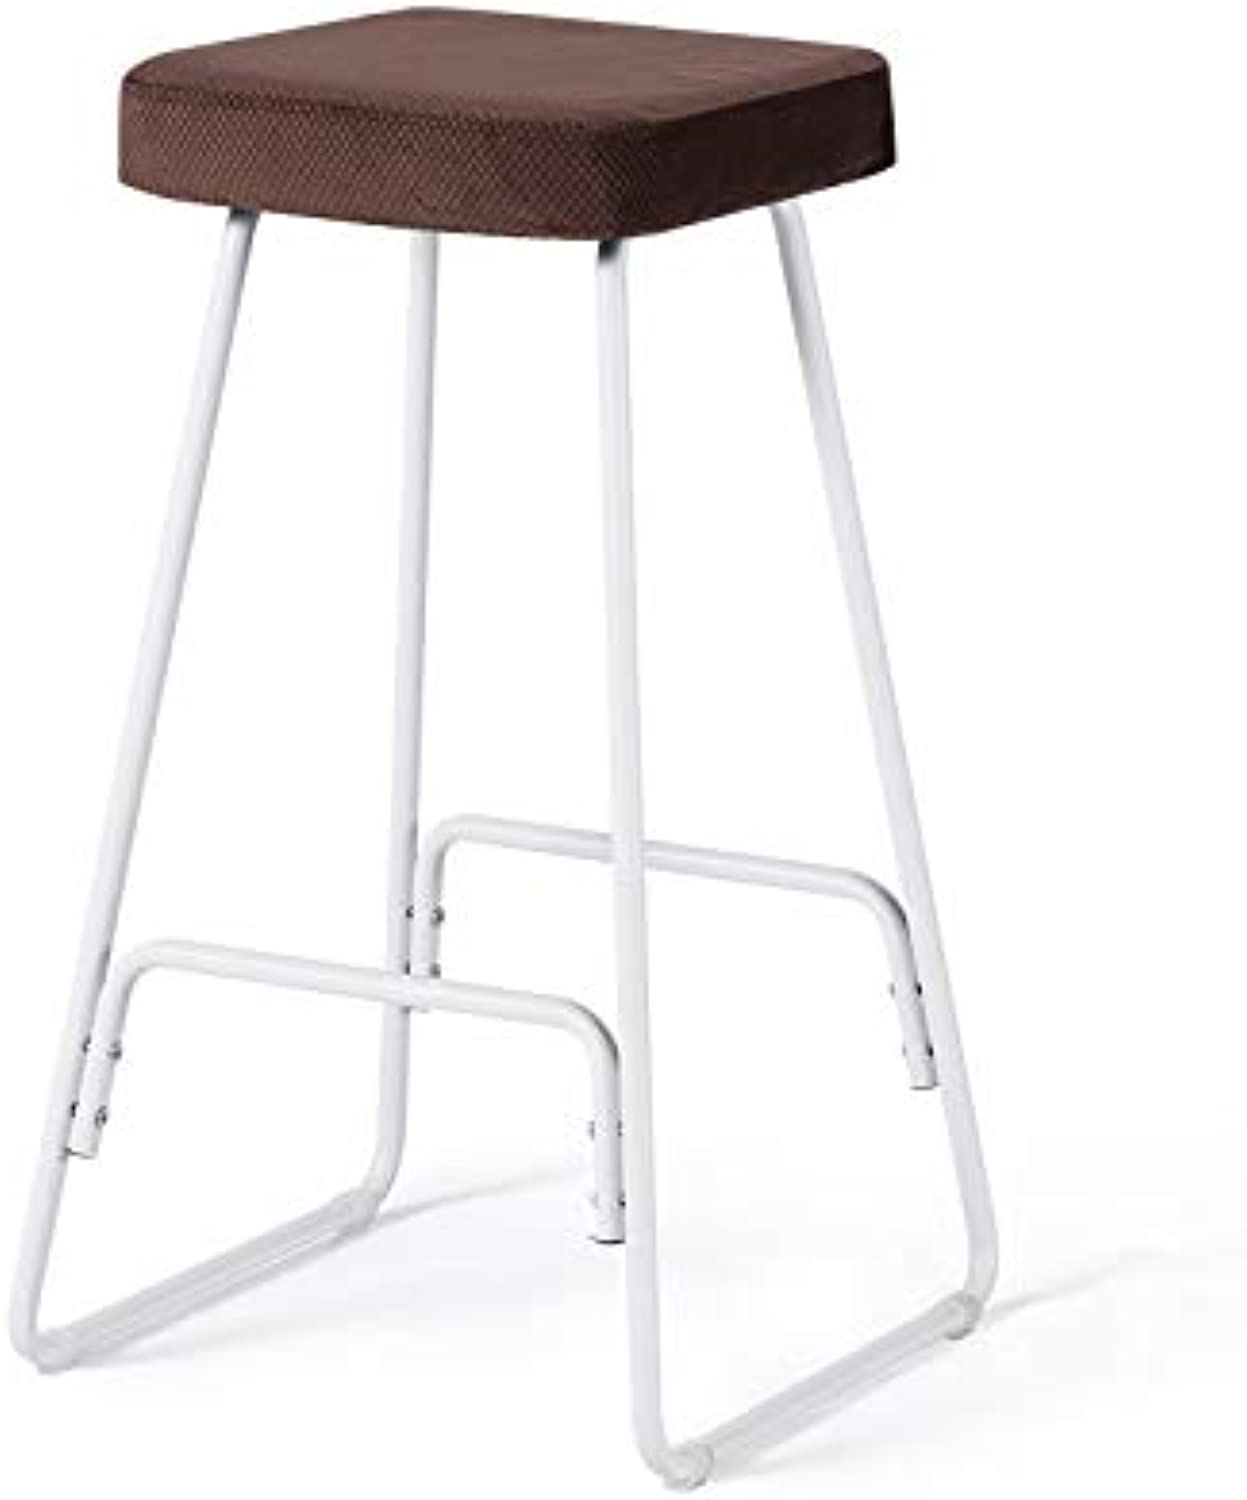 Barstools - White Iron Frame Bar Stool Cafe Solid Wood Stool Without Backrest Square Bar Chair 0430A (color   Brown)